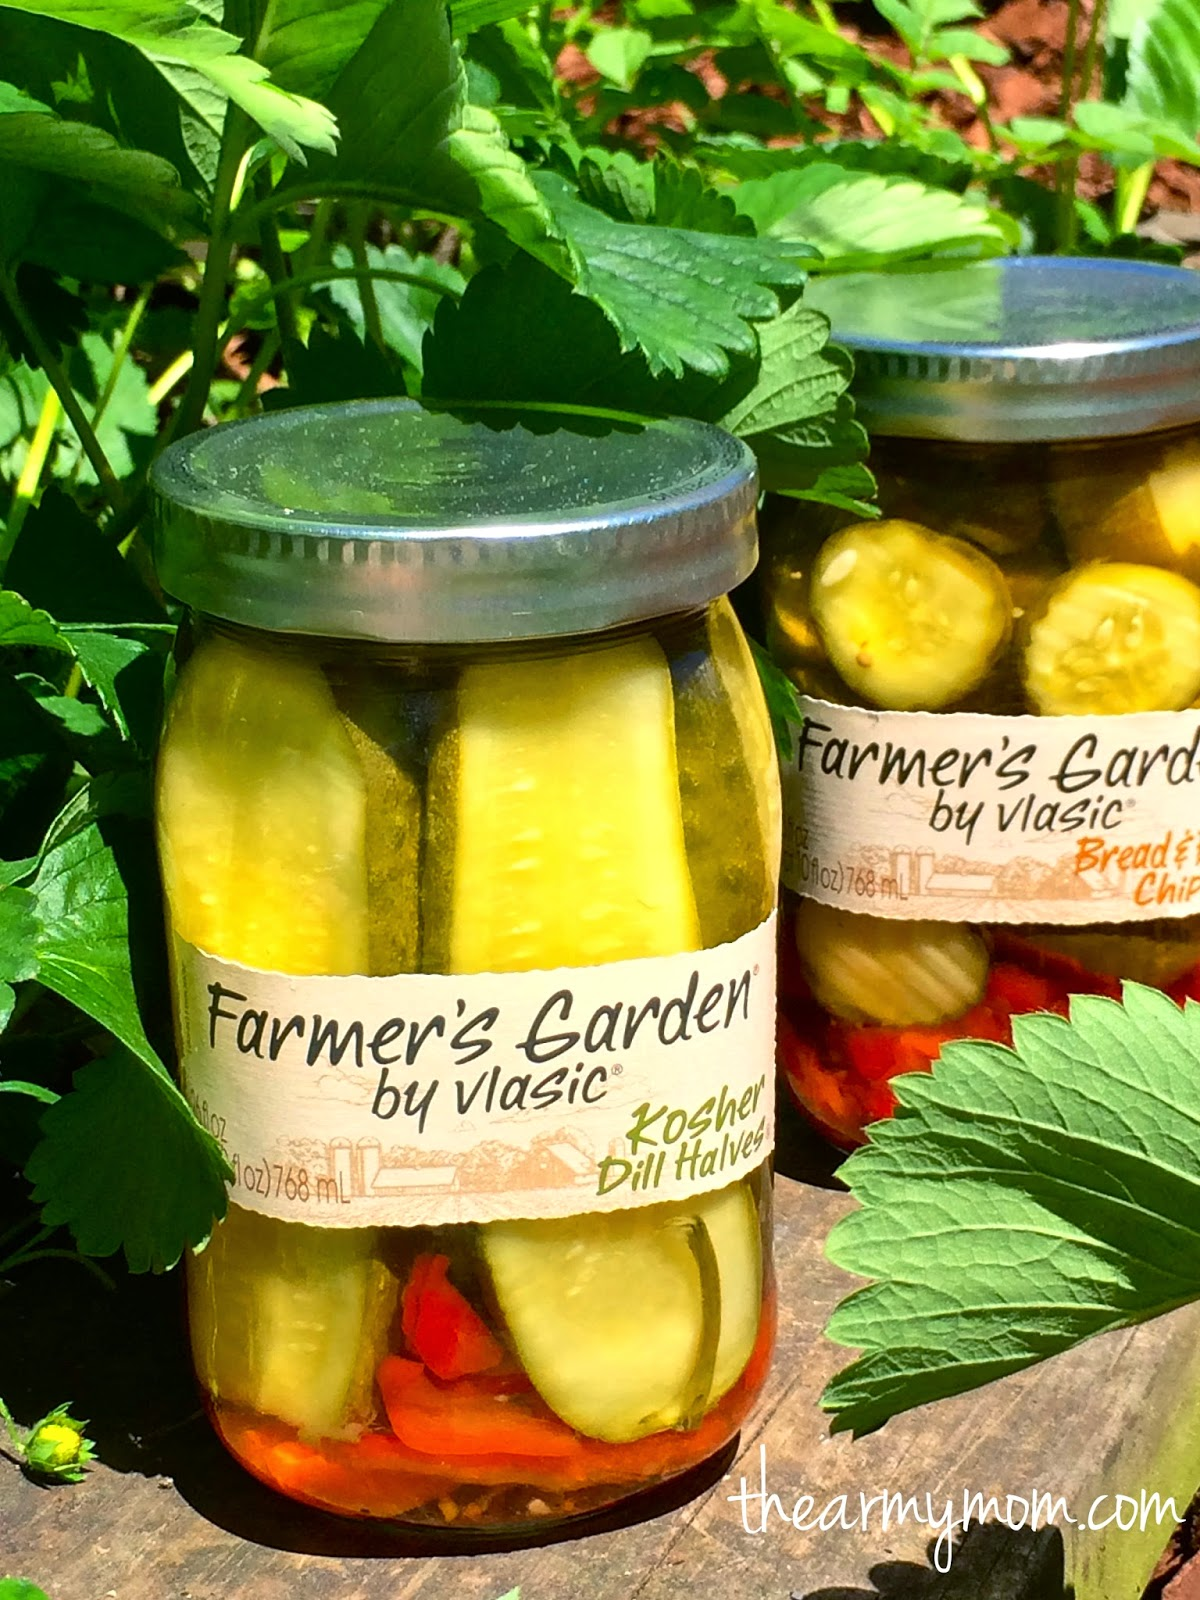 From captain 39 s daughter to army mom it 39 s summertime time for farmer 39 s garden pickles by vlasic for Vlasic farmer s garden pickles